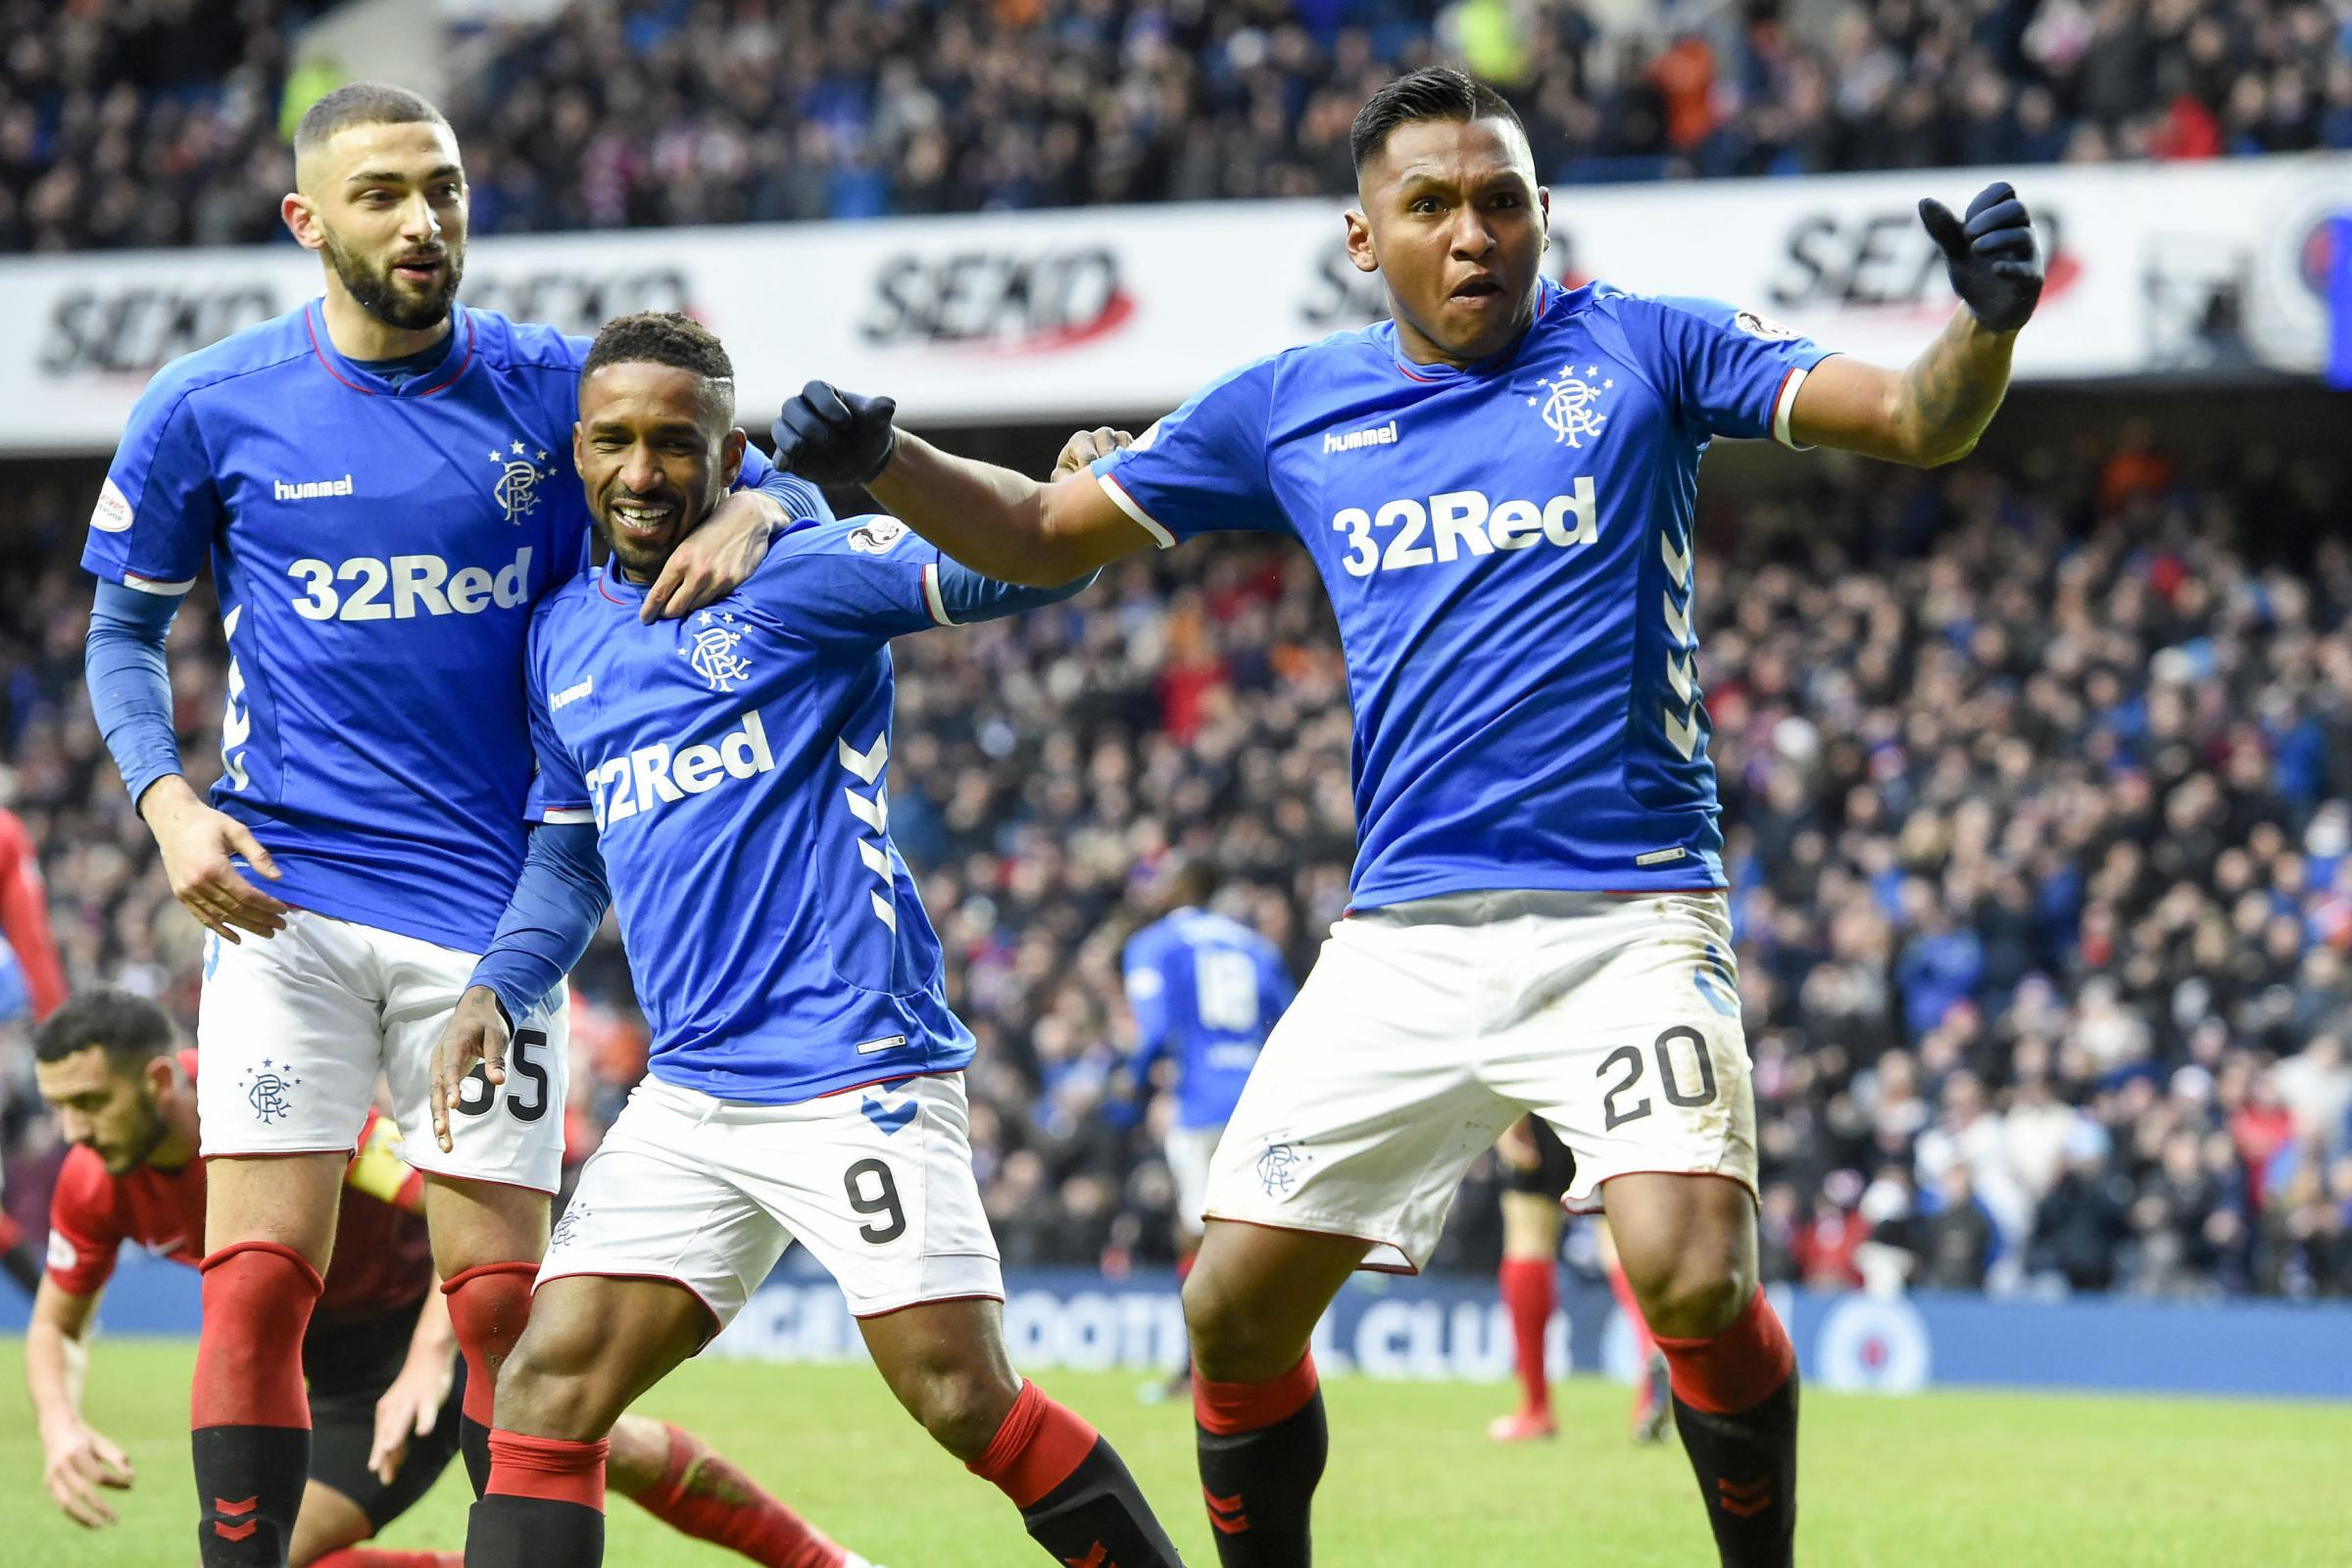 Davie Hay: Gers relieved that Alfredo Morelos free to play but Celtic players know his weakness